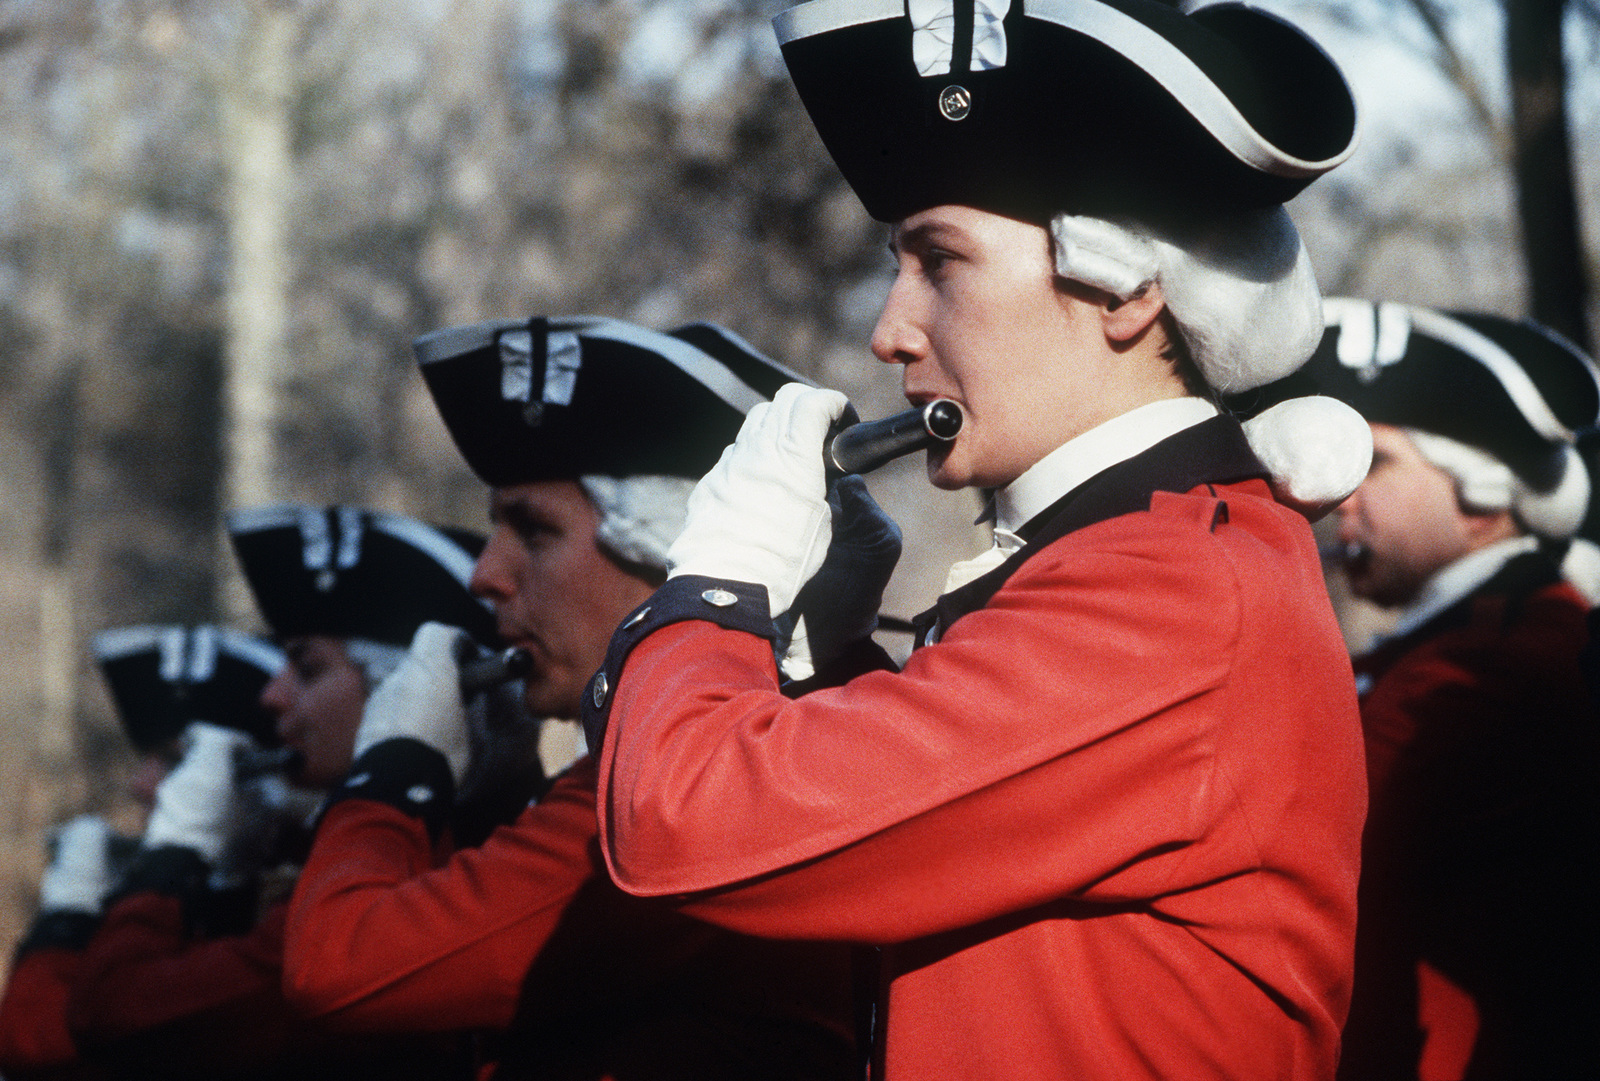 Members of the old Guard Fife and Drum Corps perform during a ceremony commemorating George Washington's 255th birthday